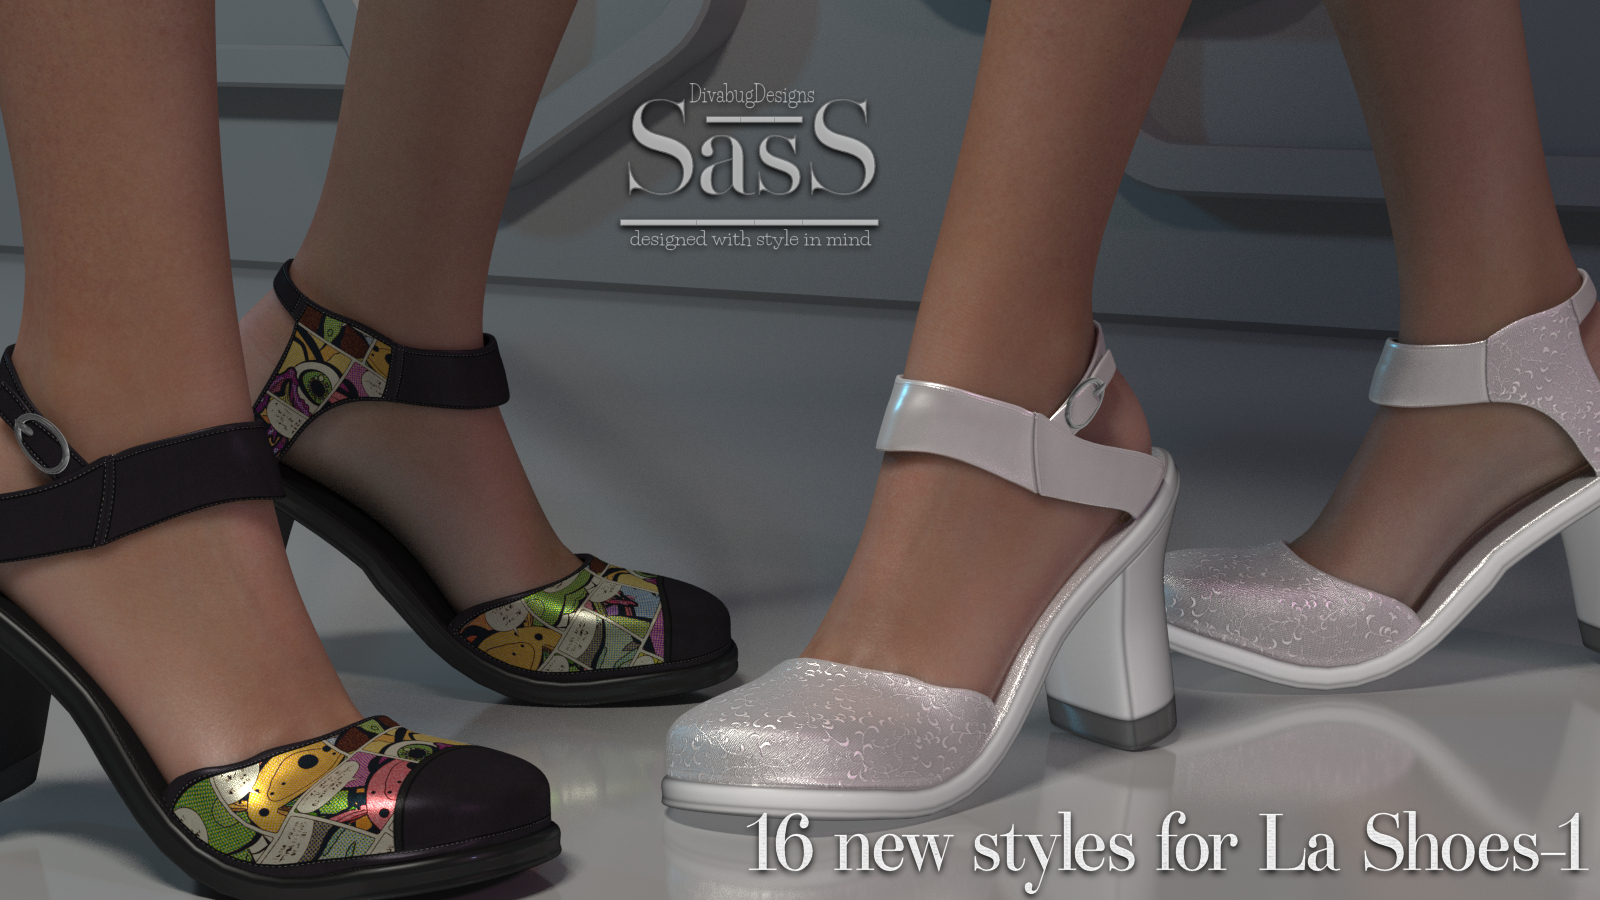 SasS La Shoes-1 by DivabugDesigns